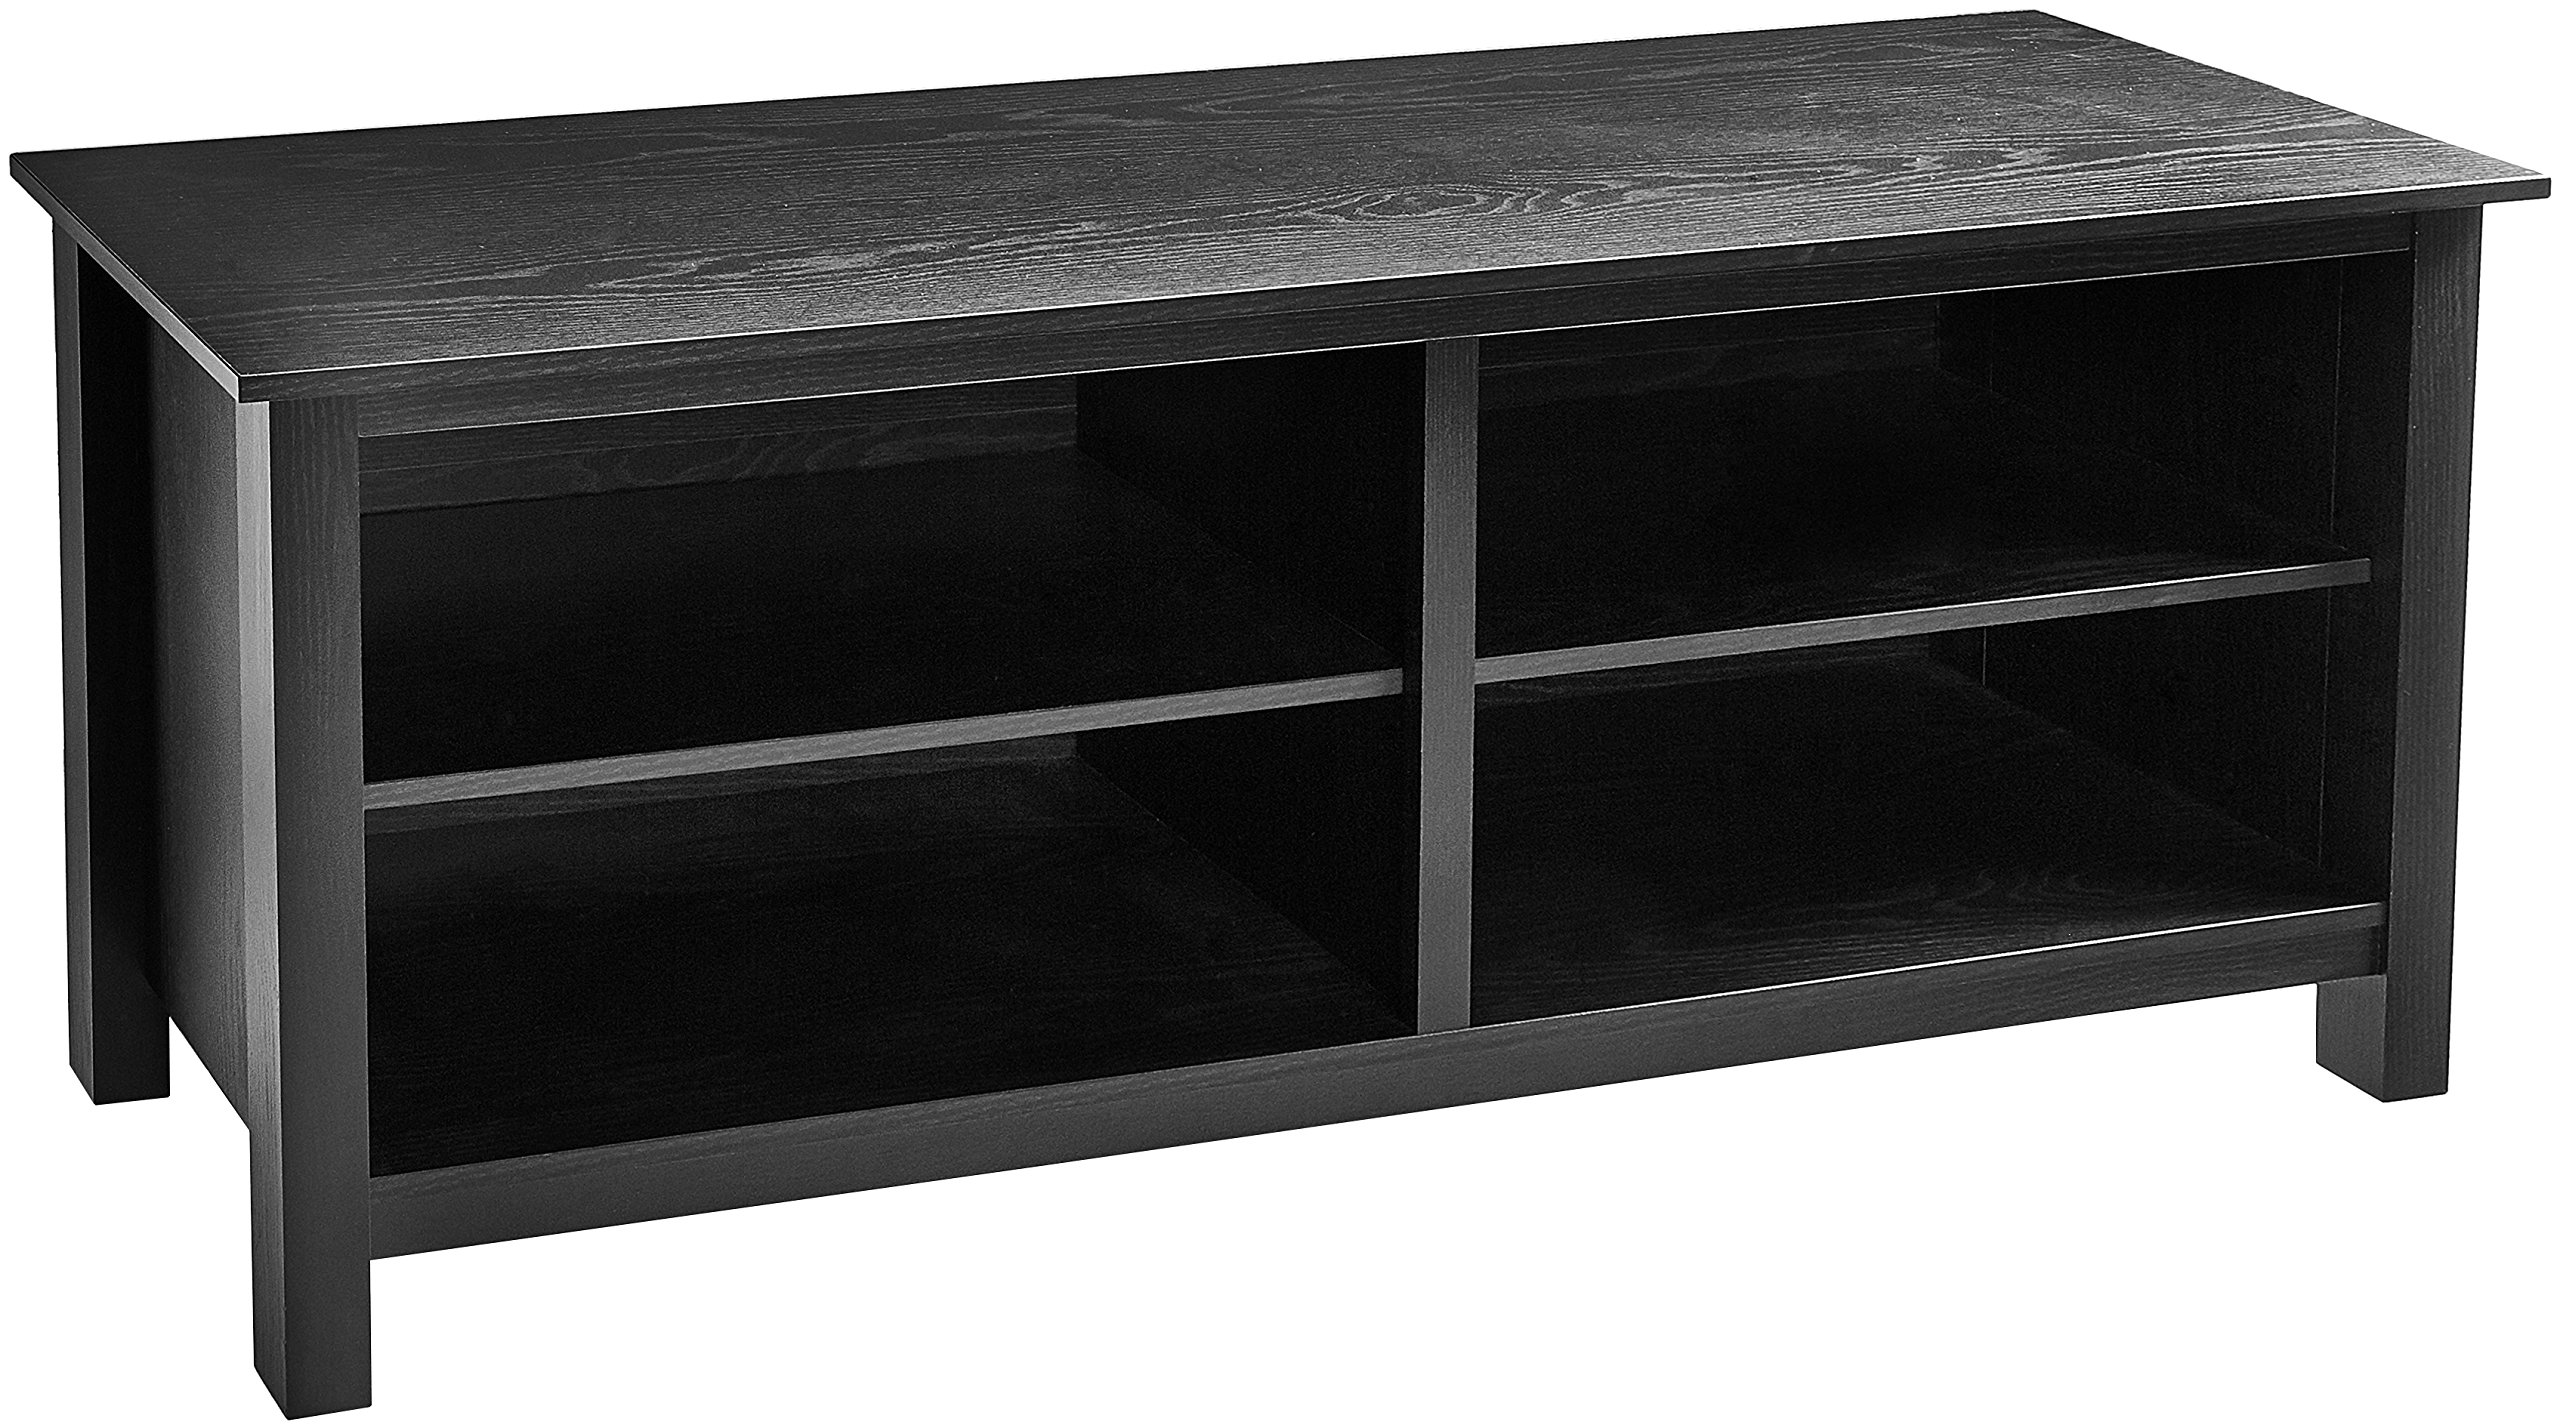 Rockpoint Plymouth Wood TV Stand Storage Console, 58'', Midnight Black by ROCKPOINT